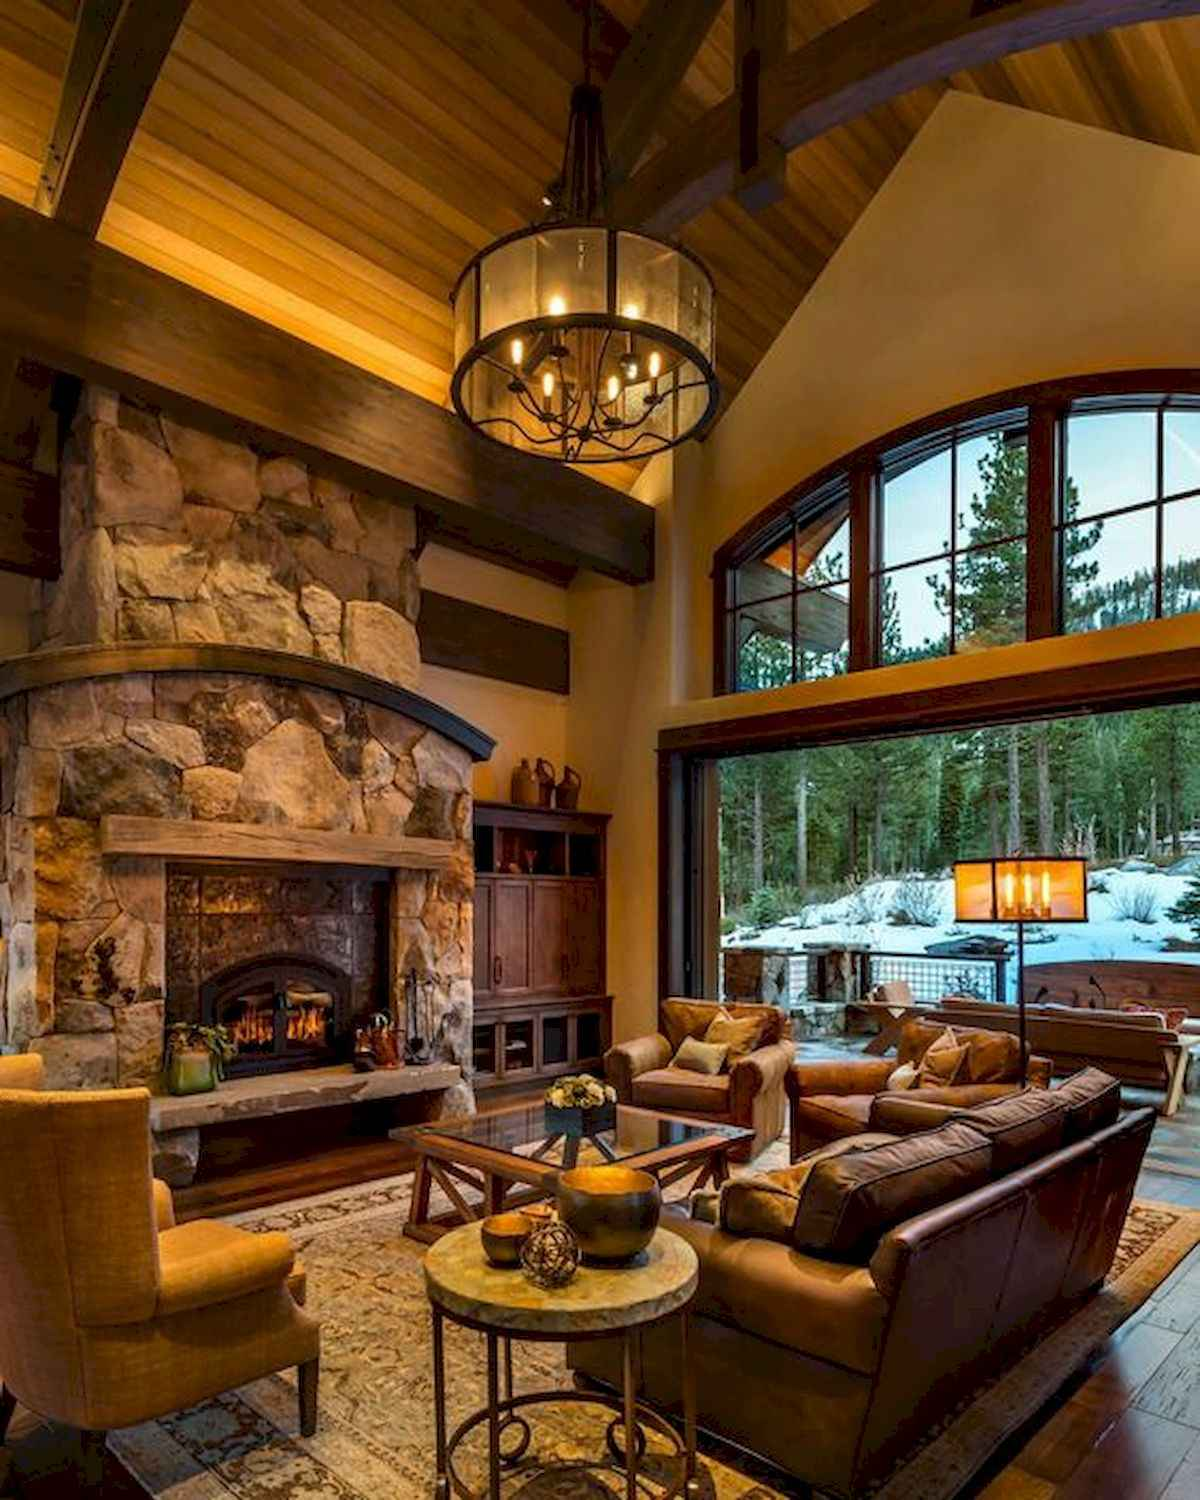 1200 1500 In 60 Stunning Log Cabin Homes Fireplace Design Ideas